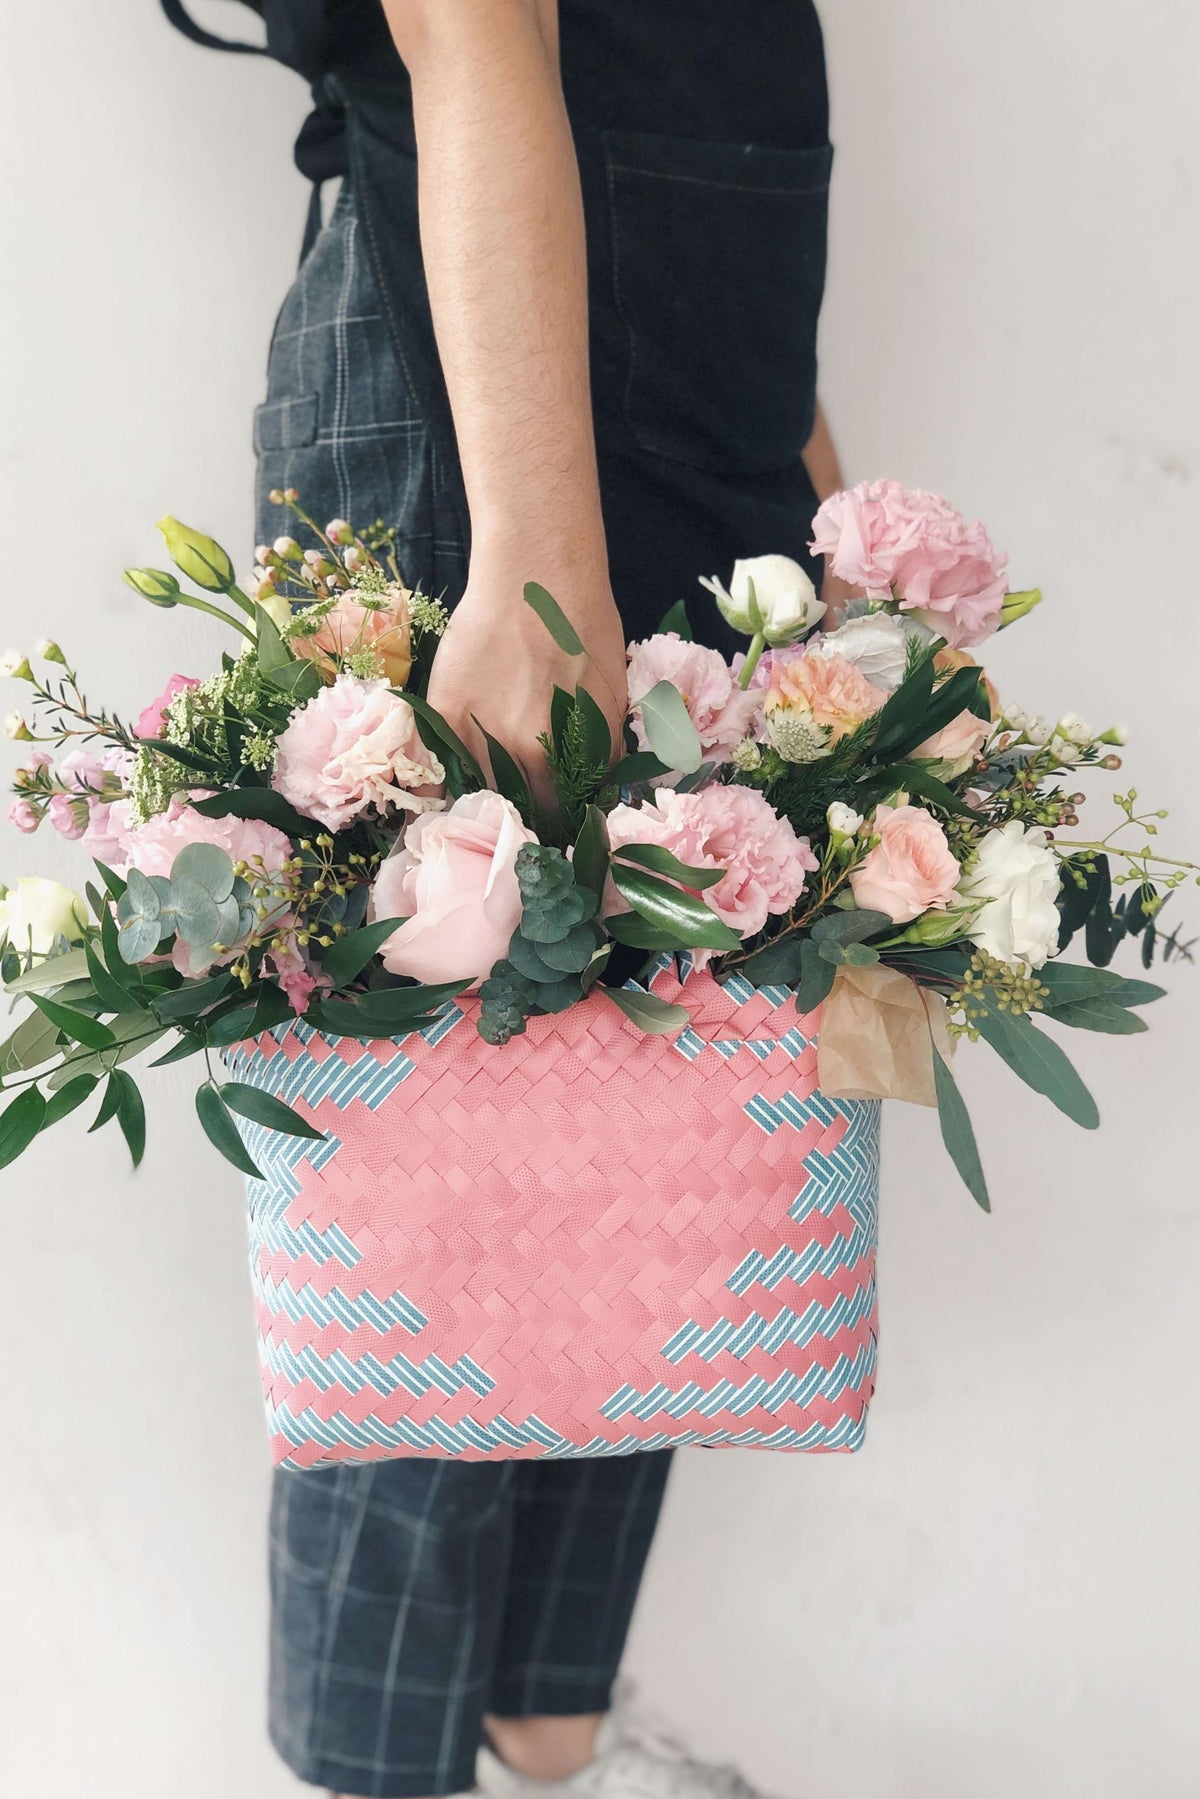 (NEW) Love is a Verb - Woven Basket - hello flowers!